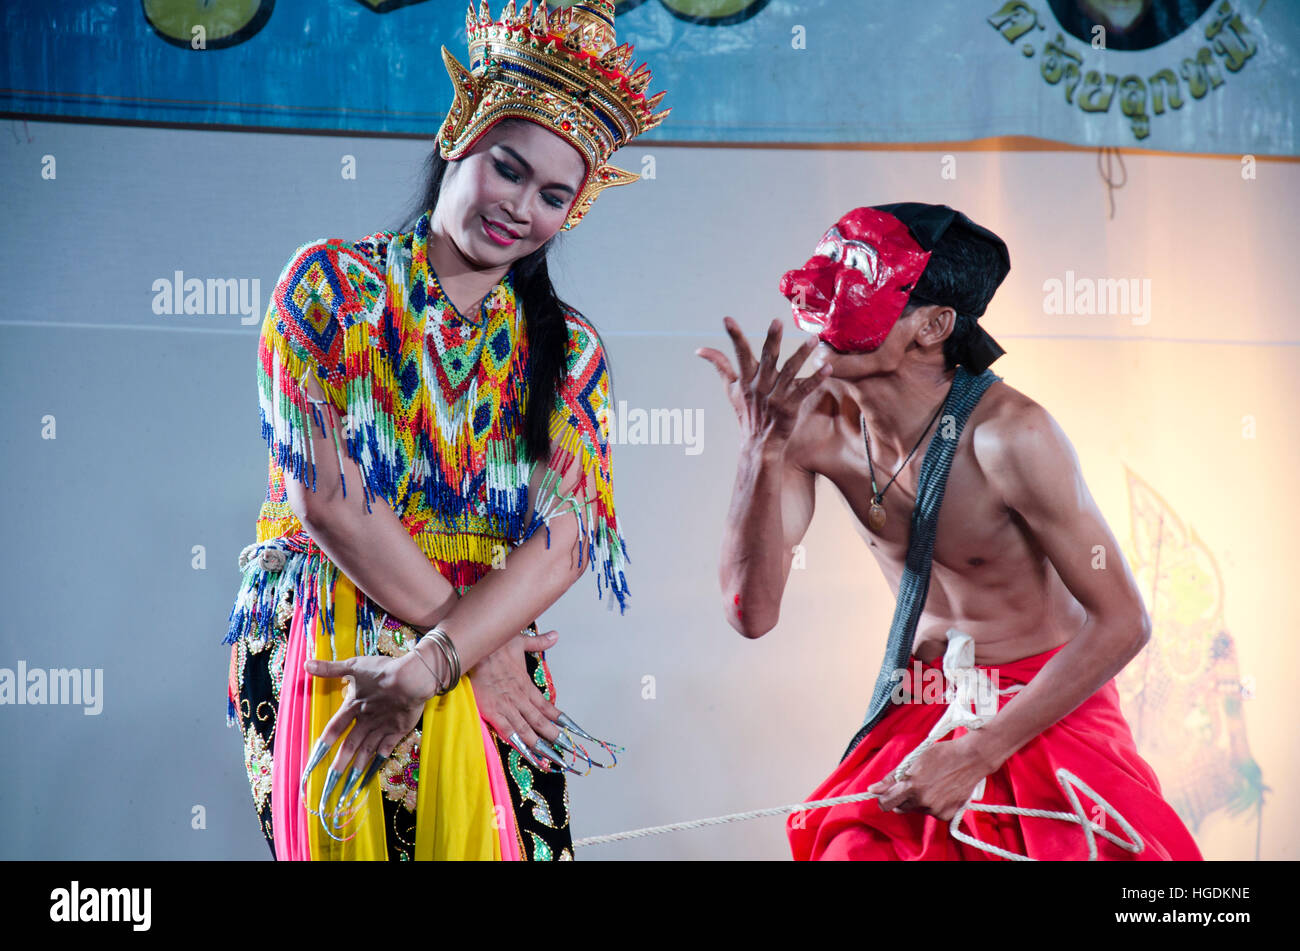 Manora dance is a traditional dance performance art of the South for show on stage at Wat Bangpai in night time - Stock Image